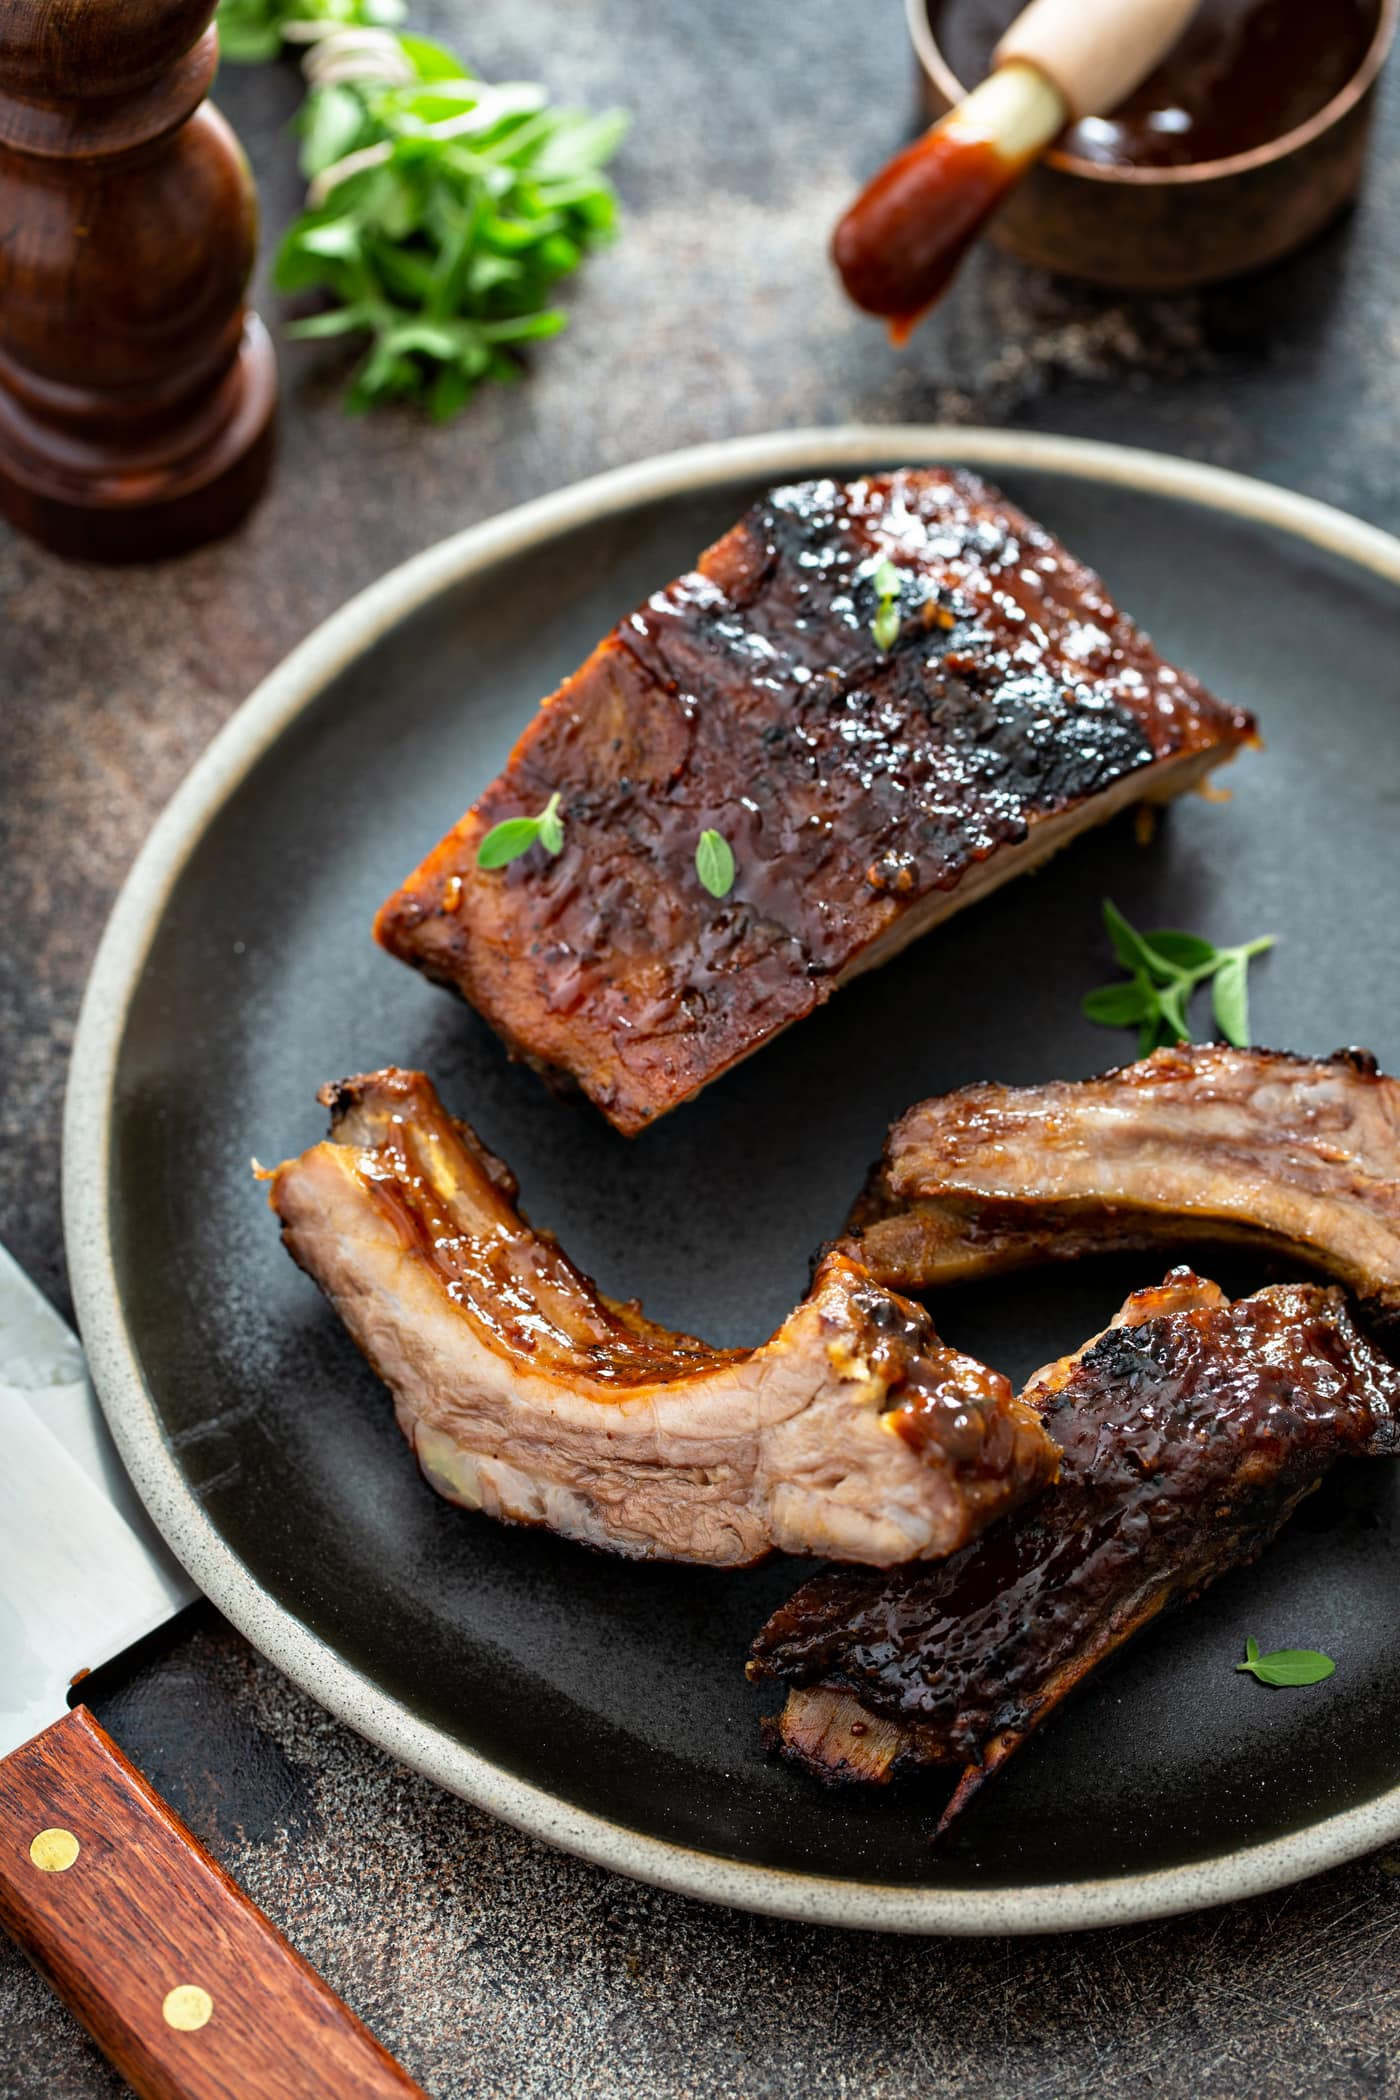 Three grilled pork ribs on a dinner plate.